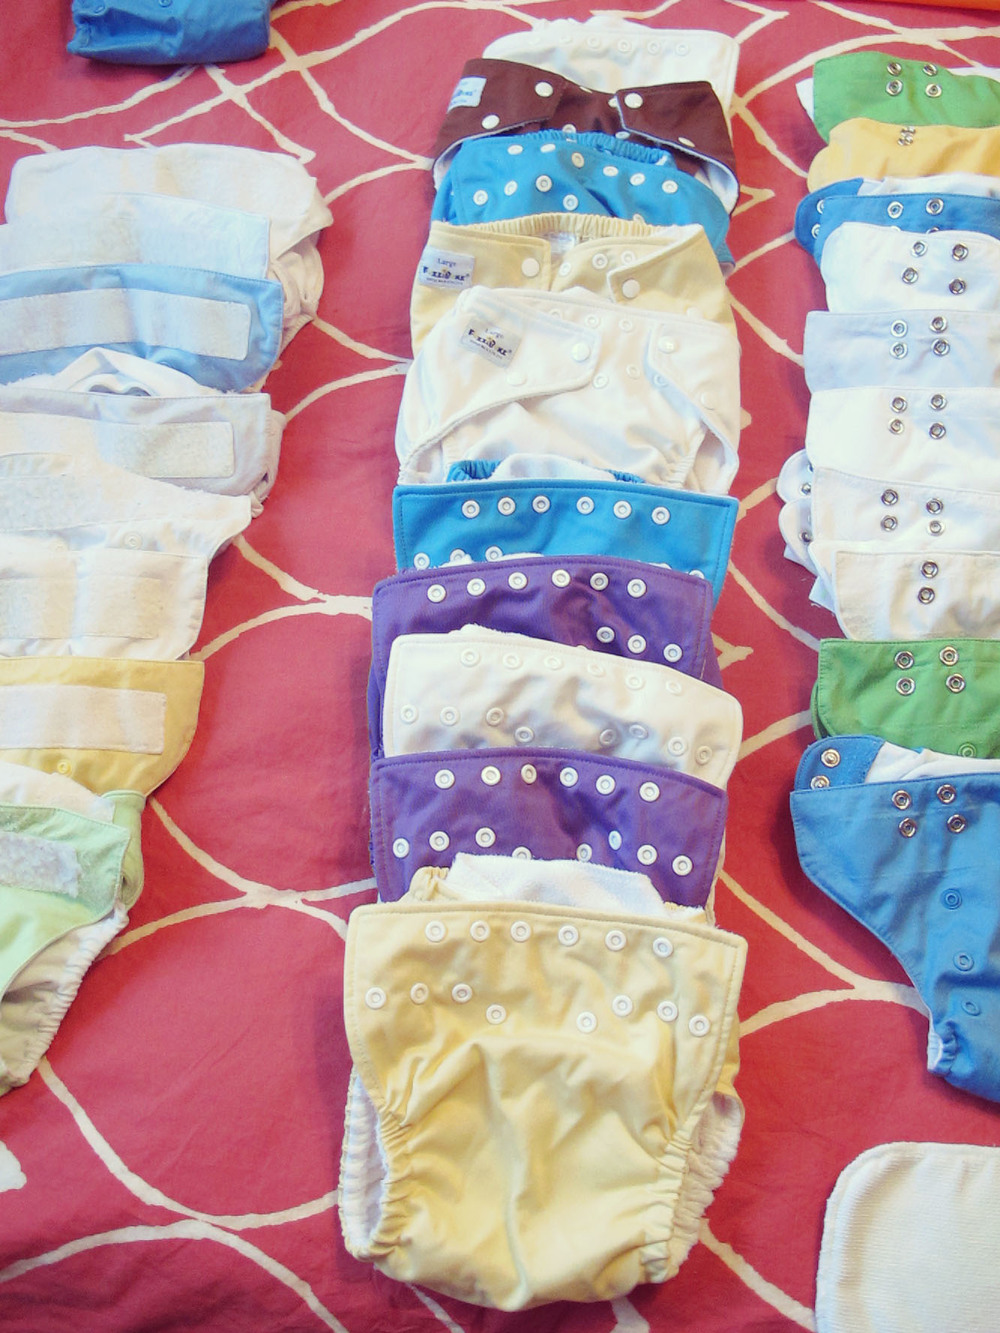 Fuzzibunz snap diapers. The way diapers should be.